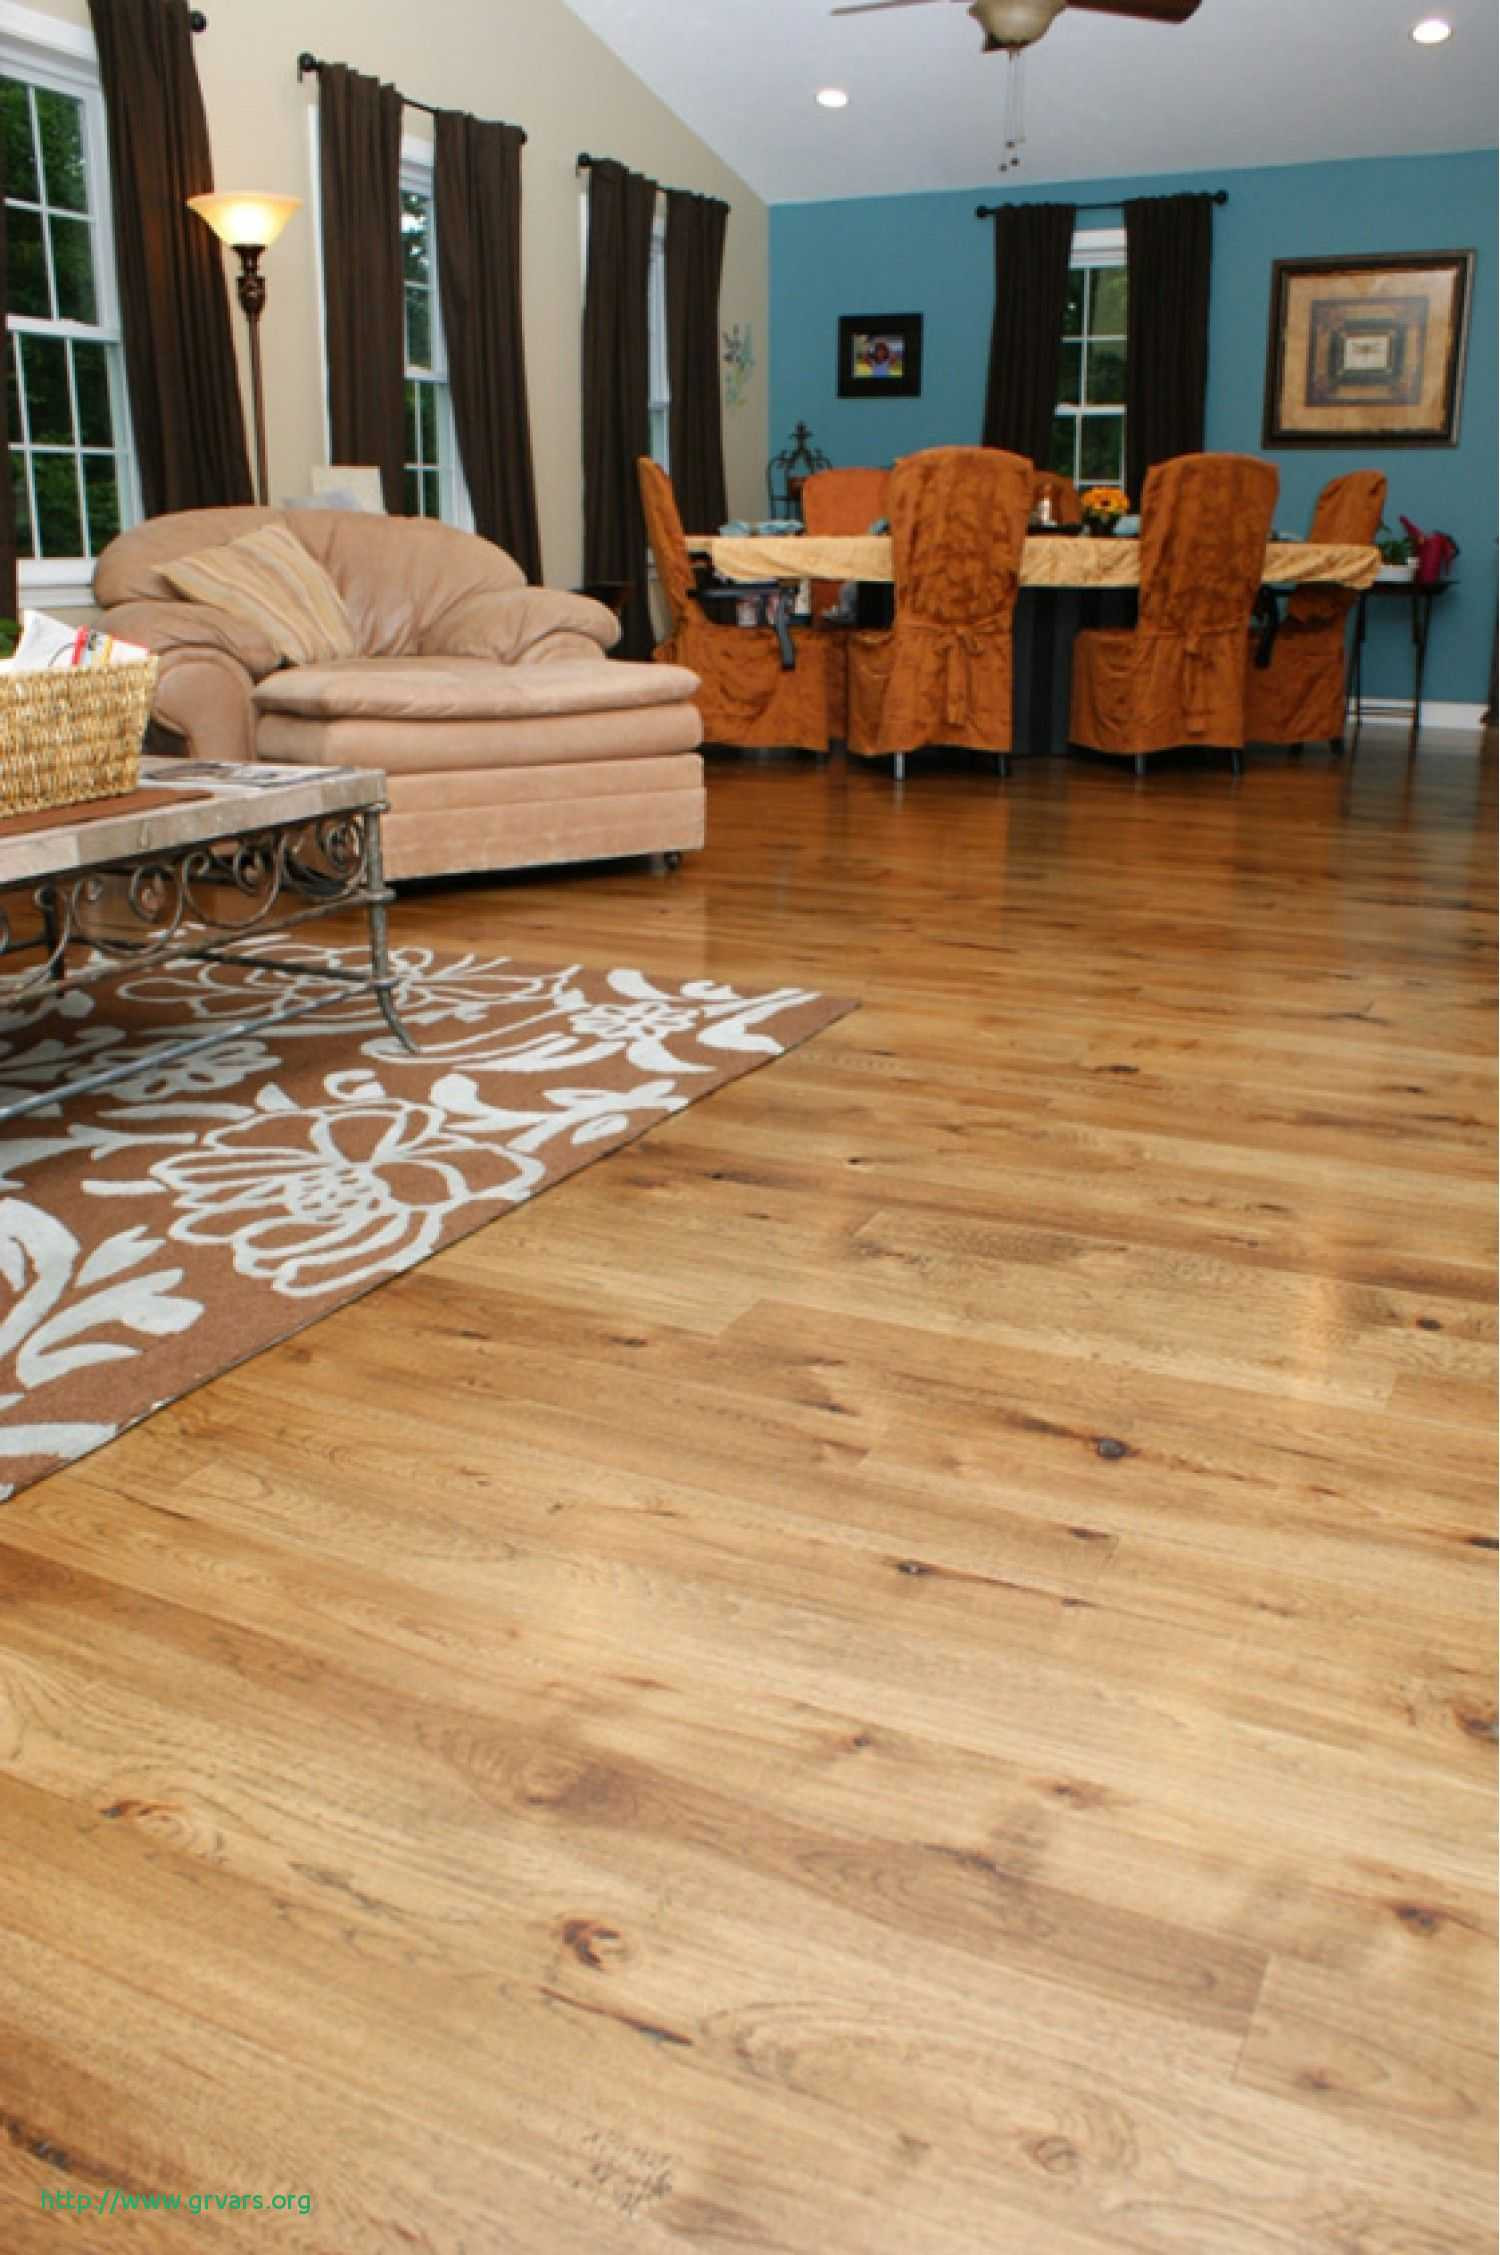 hardwood floor refinishing cherry hill nj of hardwood floor refinishing cherry hill nj frais flooring design in hardwood floor refinishing cherry hill nj frais hickory wide plank flooring natural grade